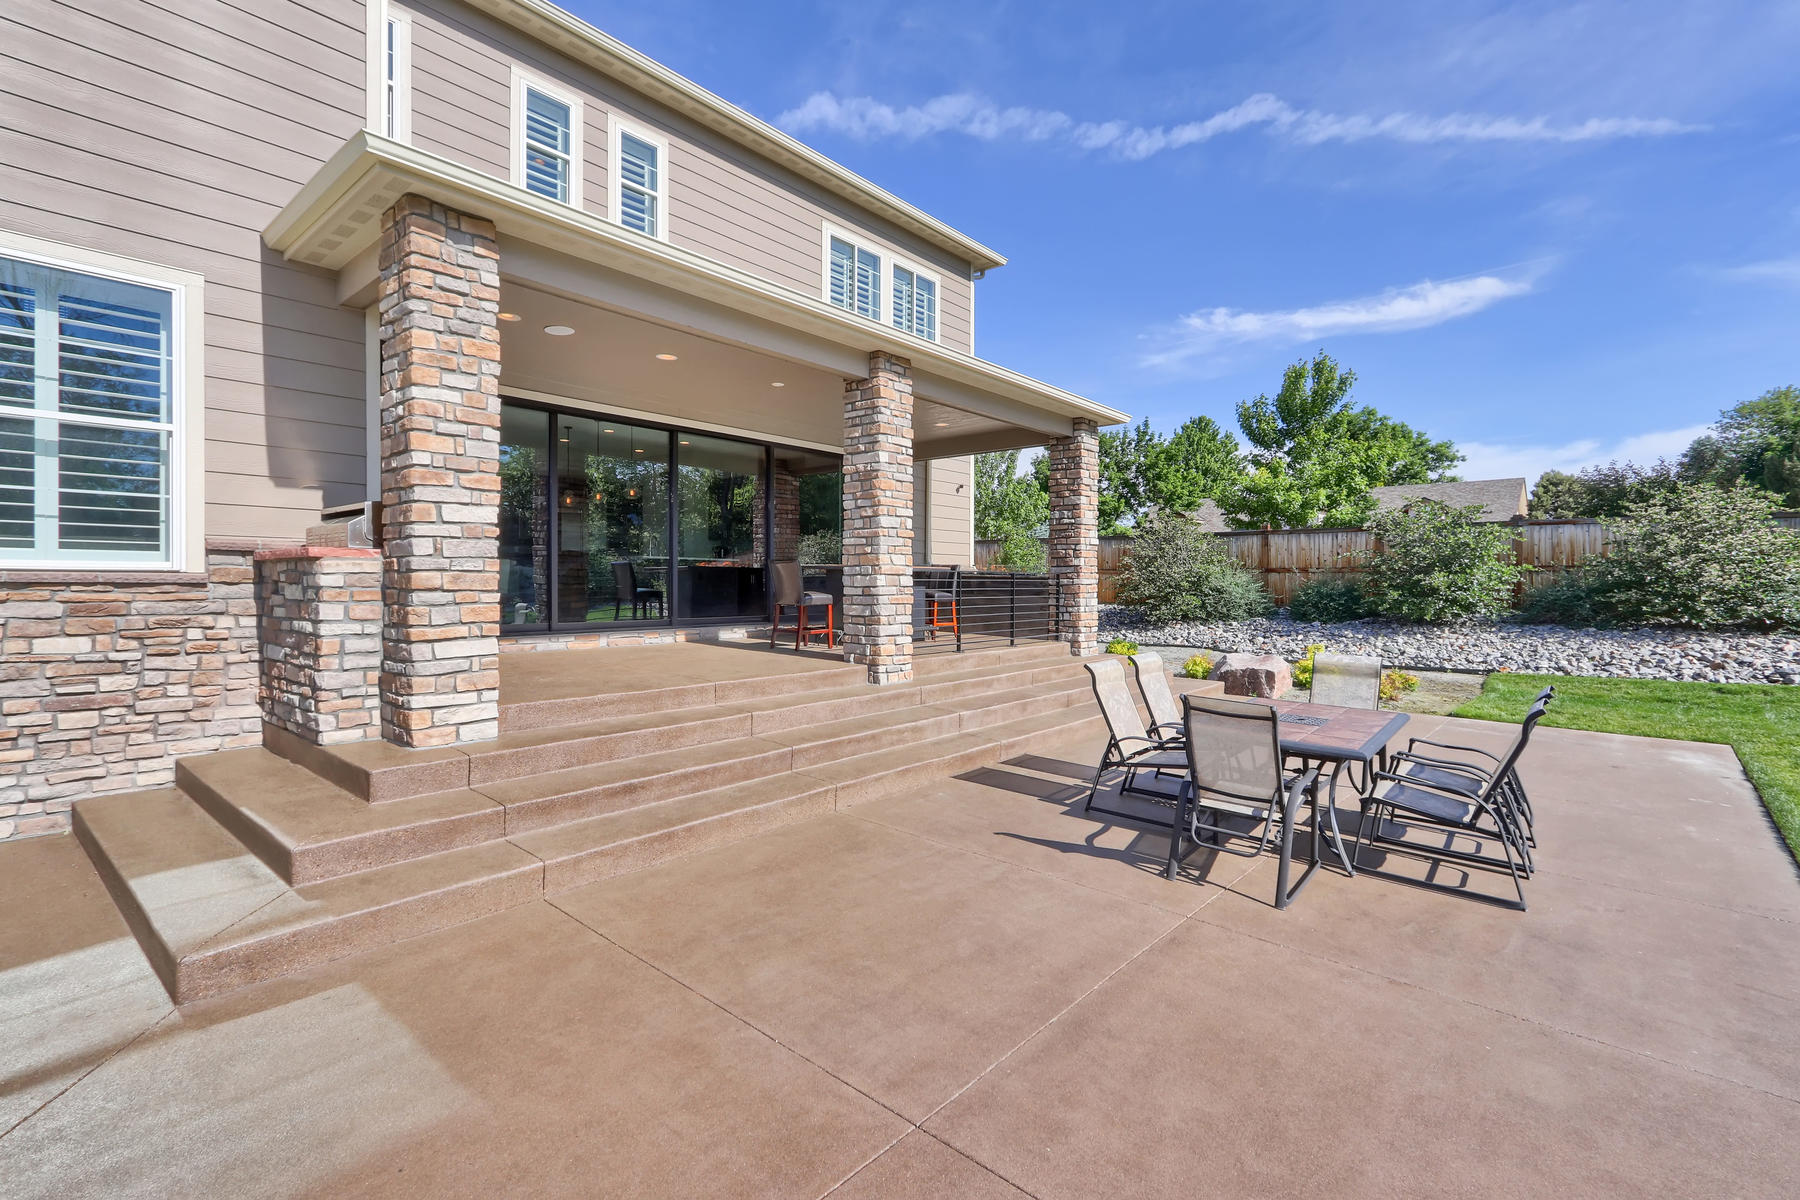 14611 W 57th Dr Arvada CO-037-010-Patio-MLS_Size.jpg